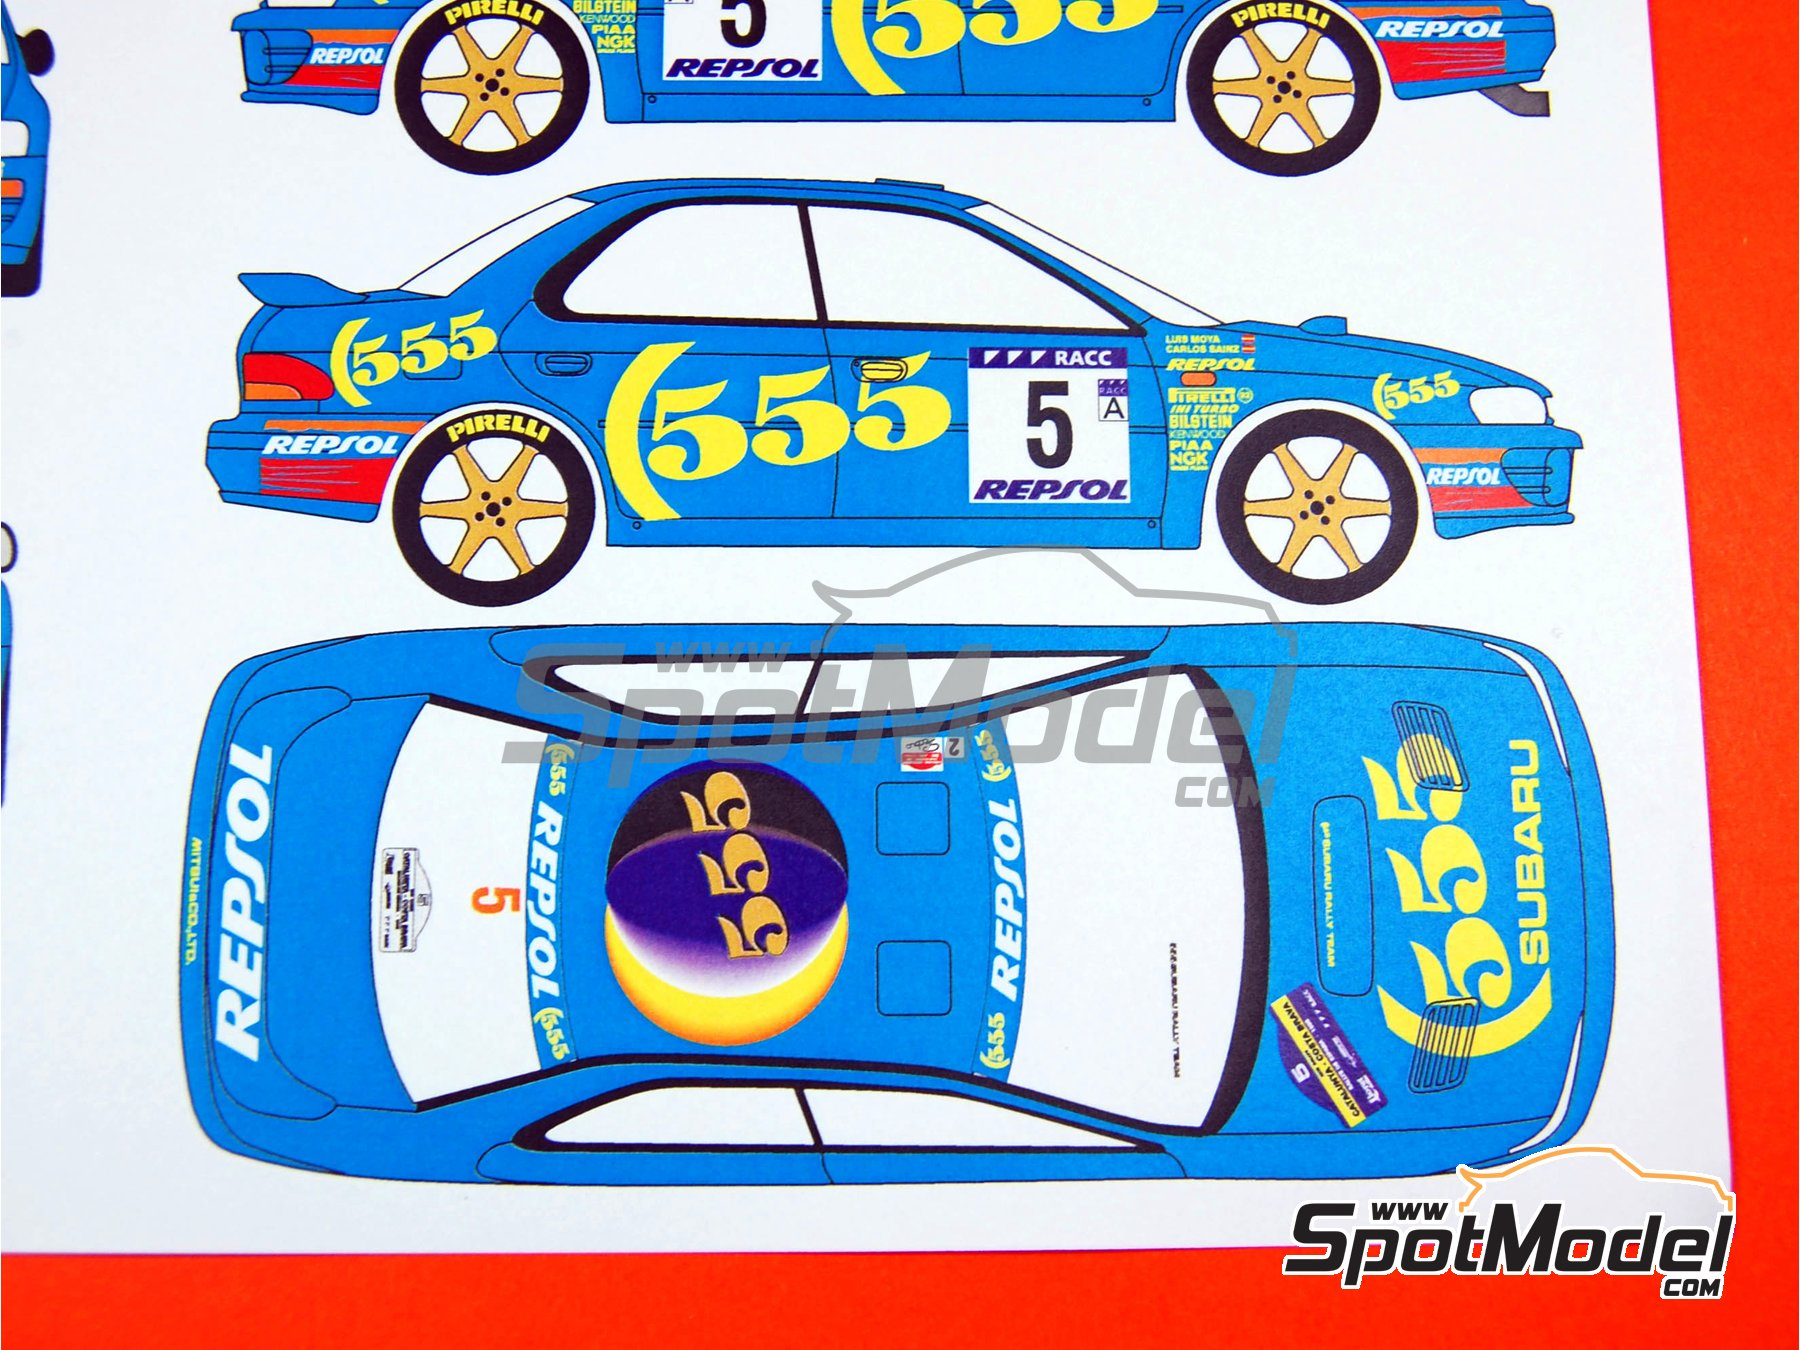 Image 6: Subaru Impreza 555 Group A Repsol - Catalunya Costa Dorada RACC Rally, RAC Rally 1995 | Marking / livery in 1/24 scale manufactured by Renaissance Models (ref. TK24-289)